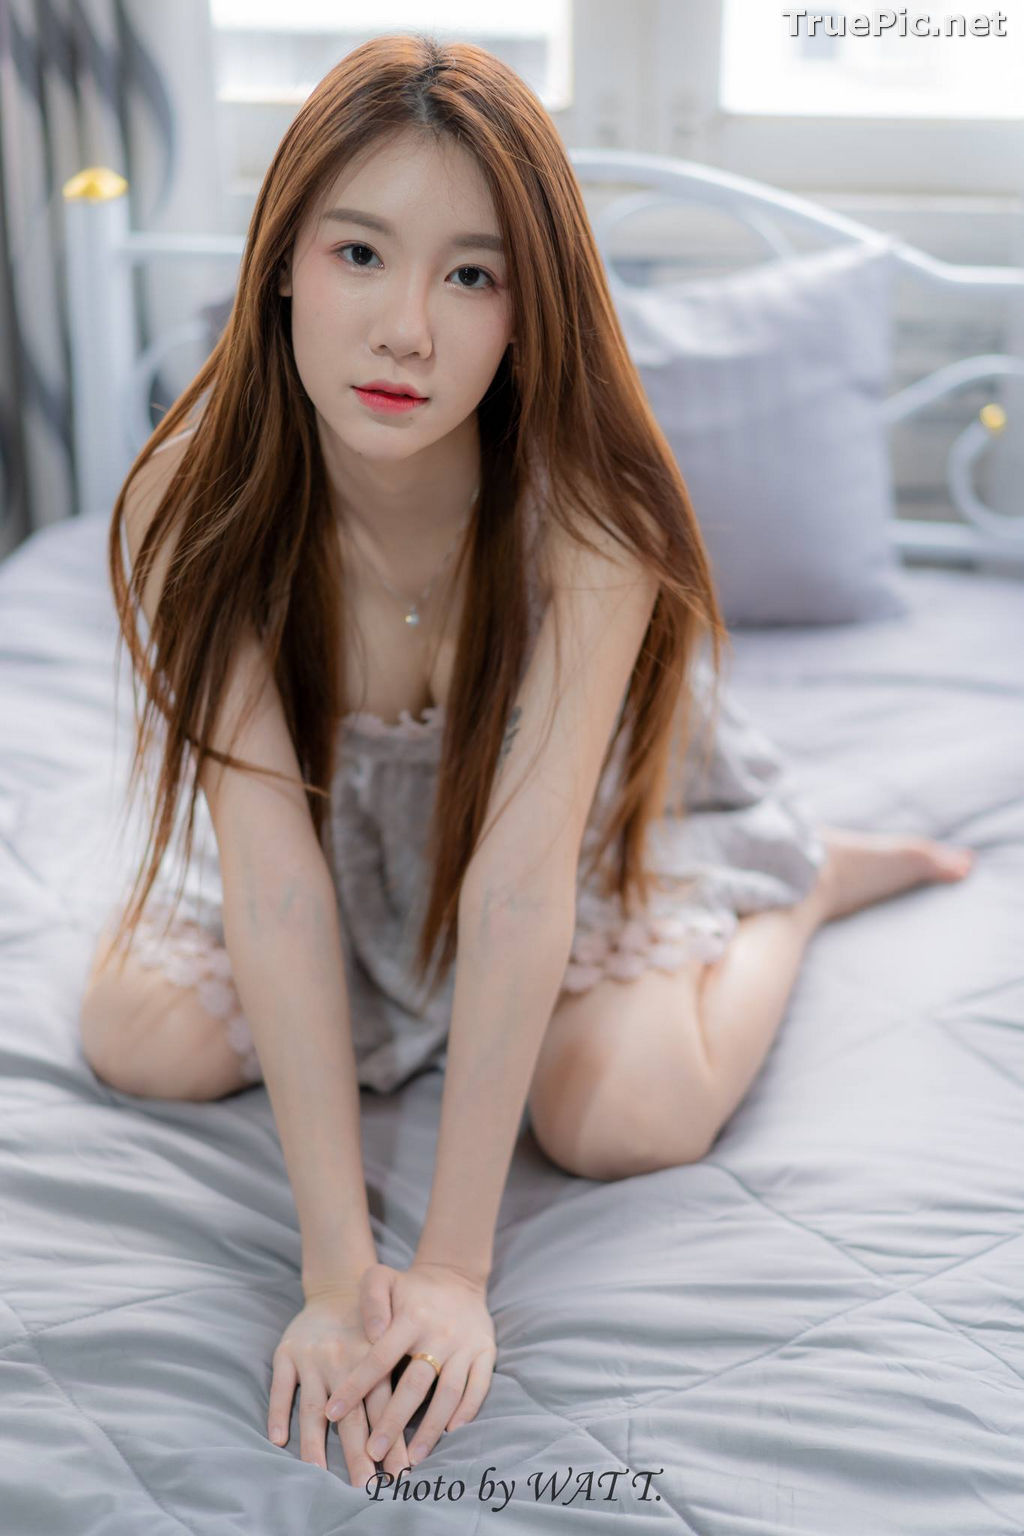 Image Thailand Cute Model - Carolis Mok - Morning Cutie Girl - TruePic.net - Picture-4